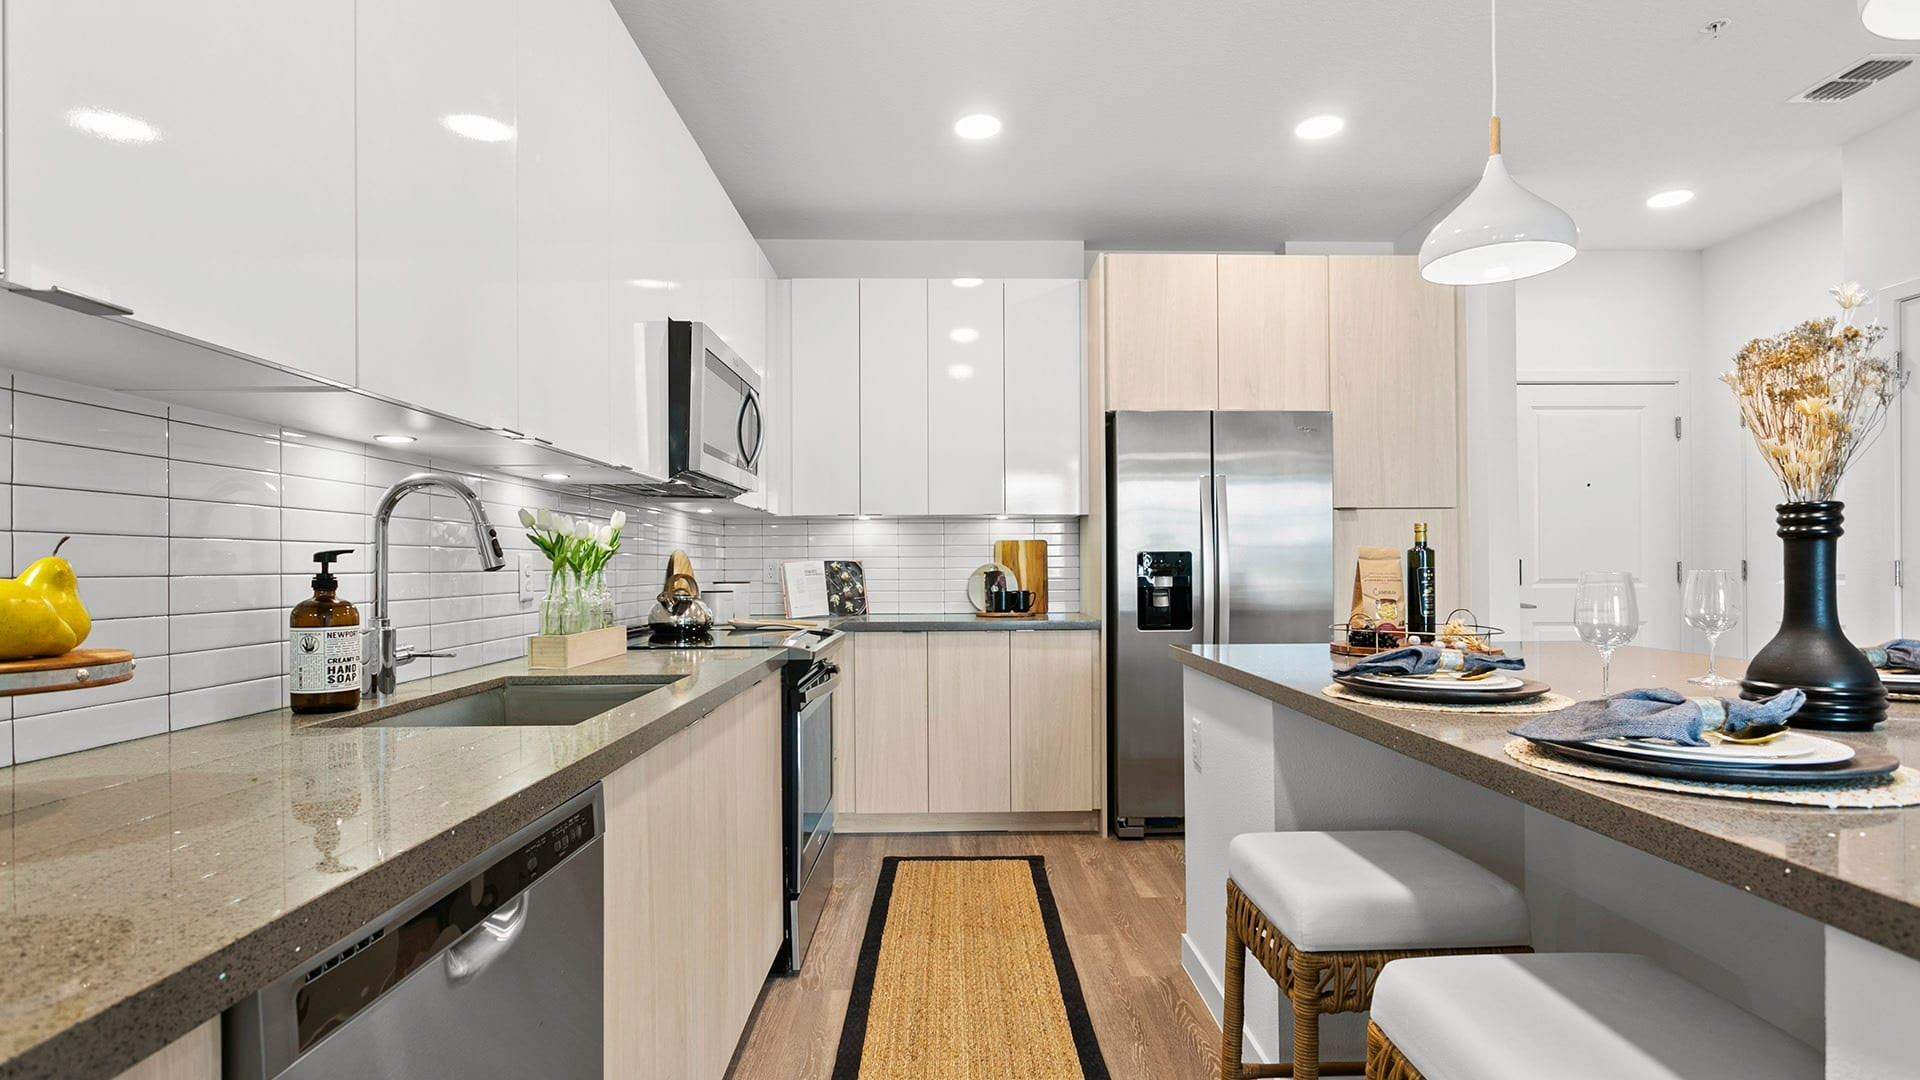 ample counter space and storage in kitchen brightened by recessed lighting